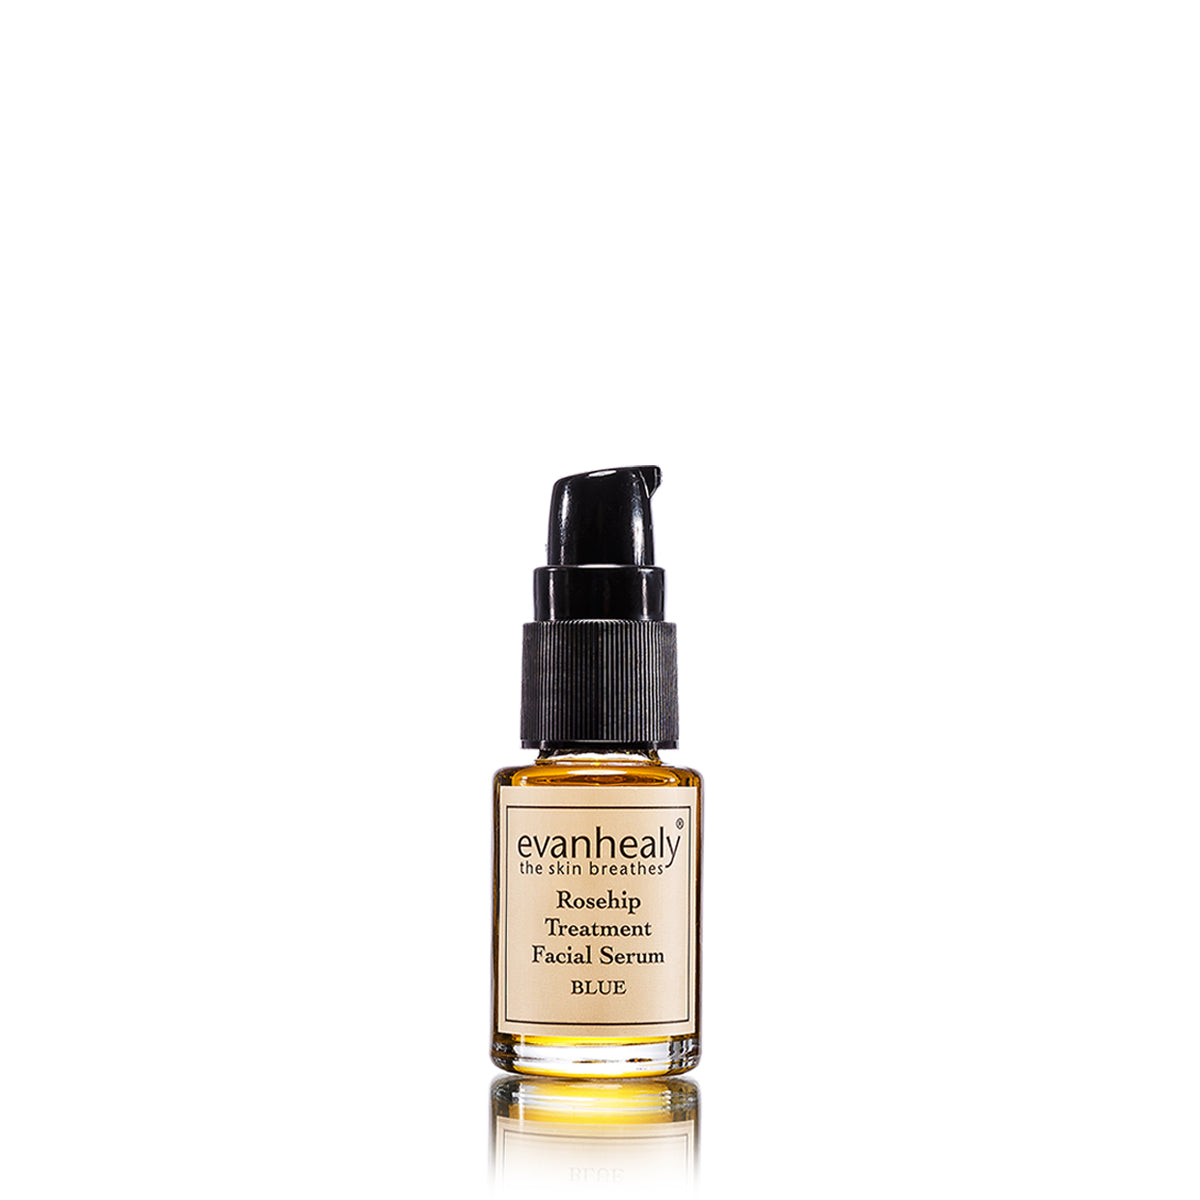 Rosehip Treatment Facial Serum - Blue